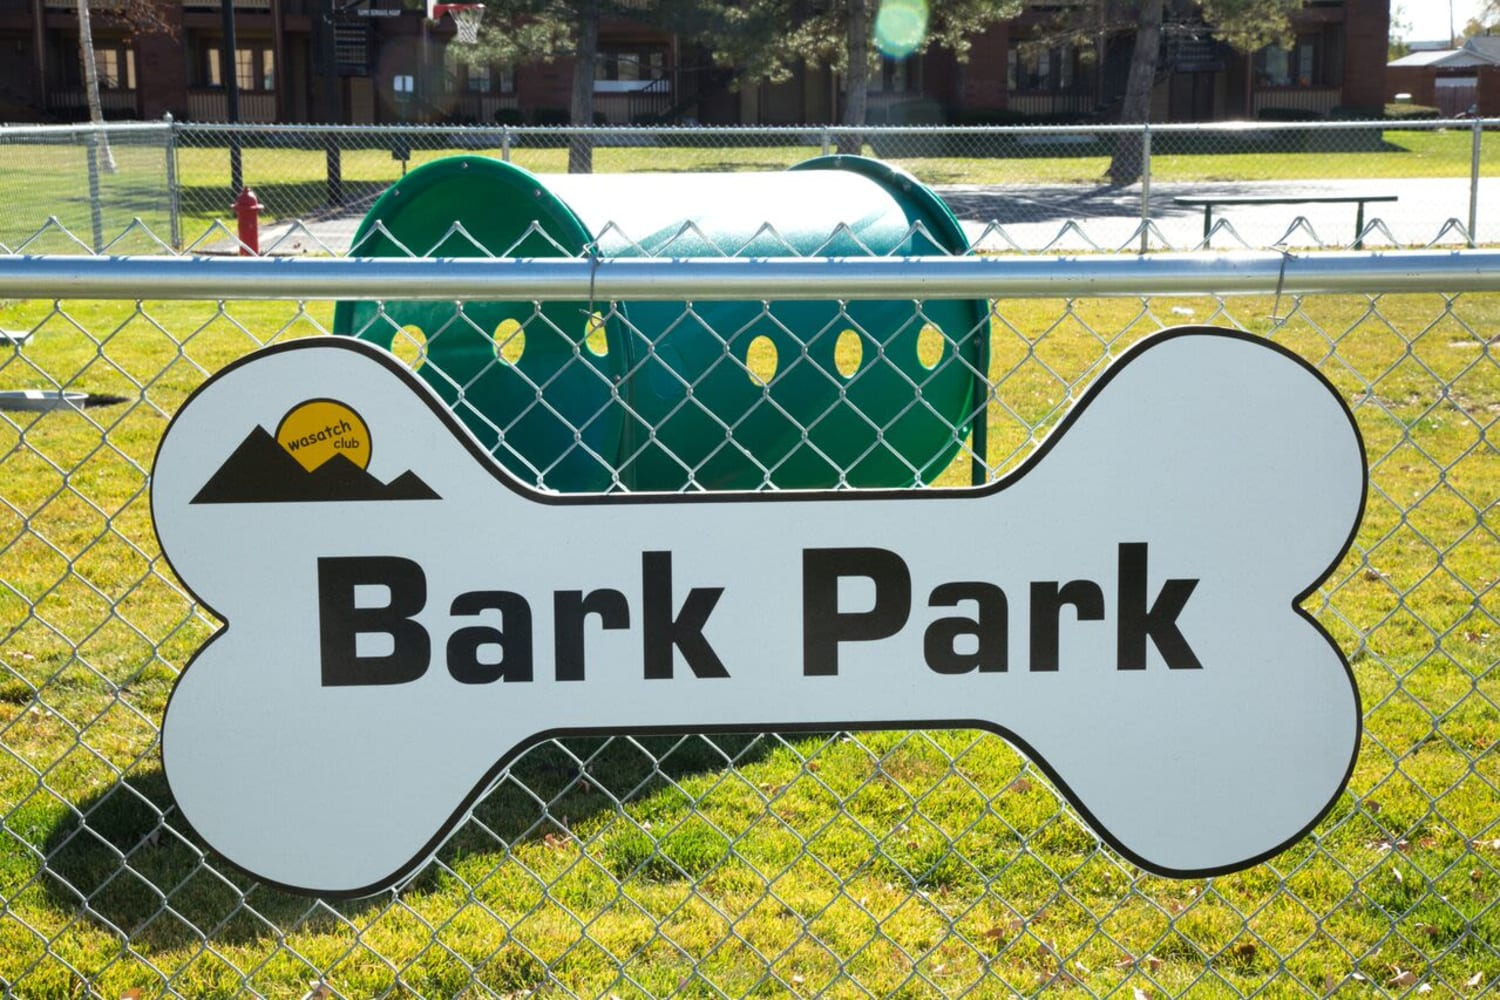 The Bark Park at Wasatch Club Apartments in Midvale, Utah